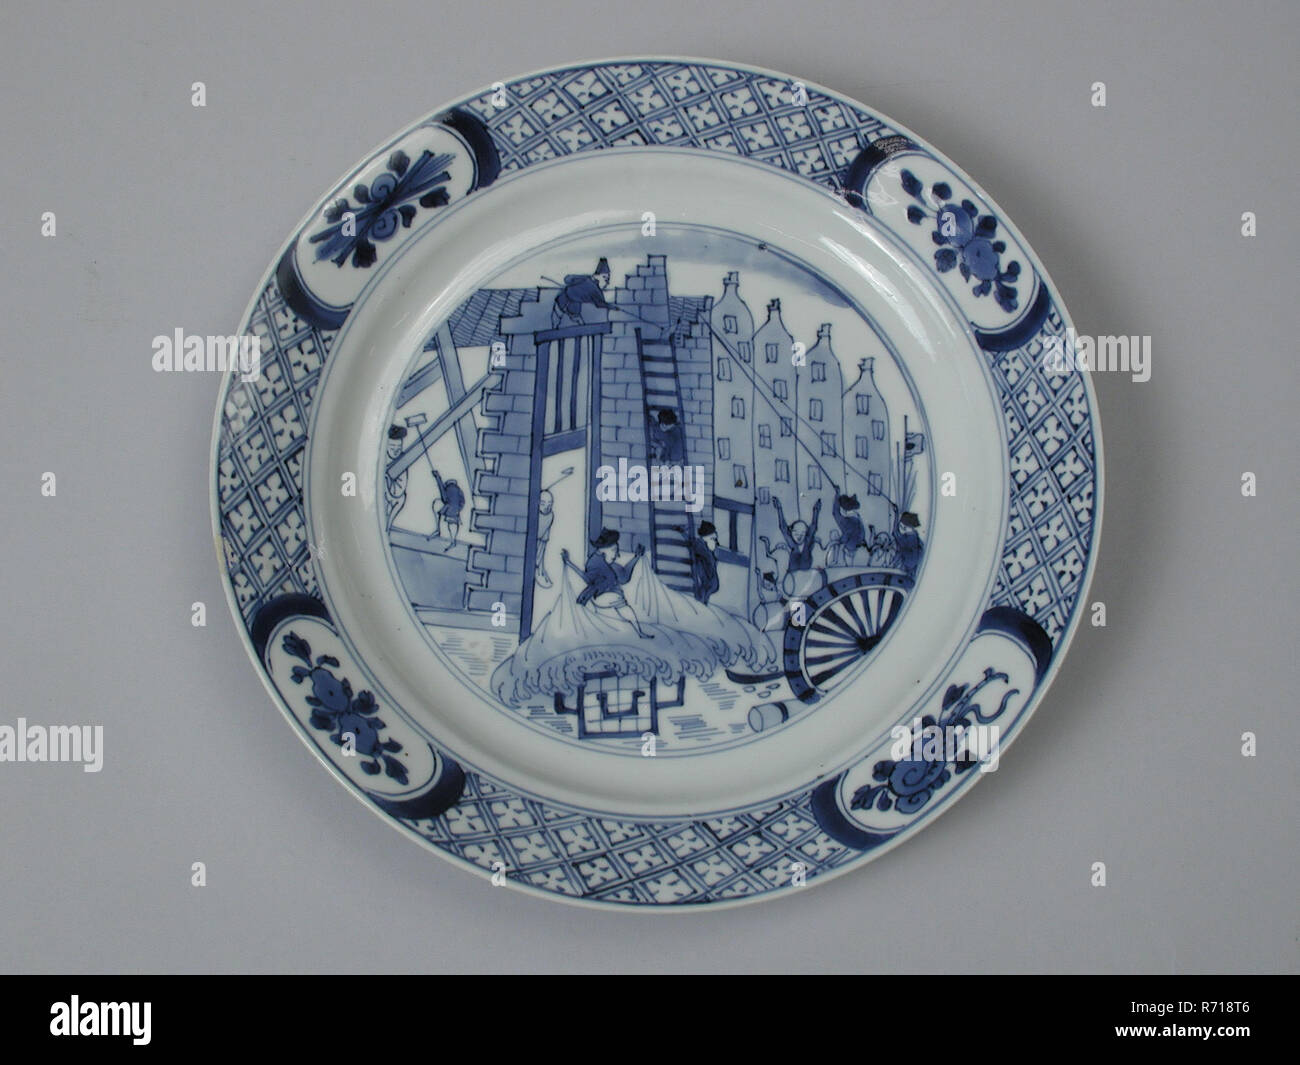 White plate with in blue image Costerman uproar: figures that plunder and break down the house, plate crockery holder ceramic porcelain glaze h 3.0, baked painted glazed Round plate with slightly deepened flat sloping edge on stand bottom bottom: Cheng Hua brand (painted and baked) Tumult of Rotterdam Costerman Riot Jacob van Zuylen van Nyevelt mayor chine de commande Jan Smeltzing - Stock Image